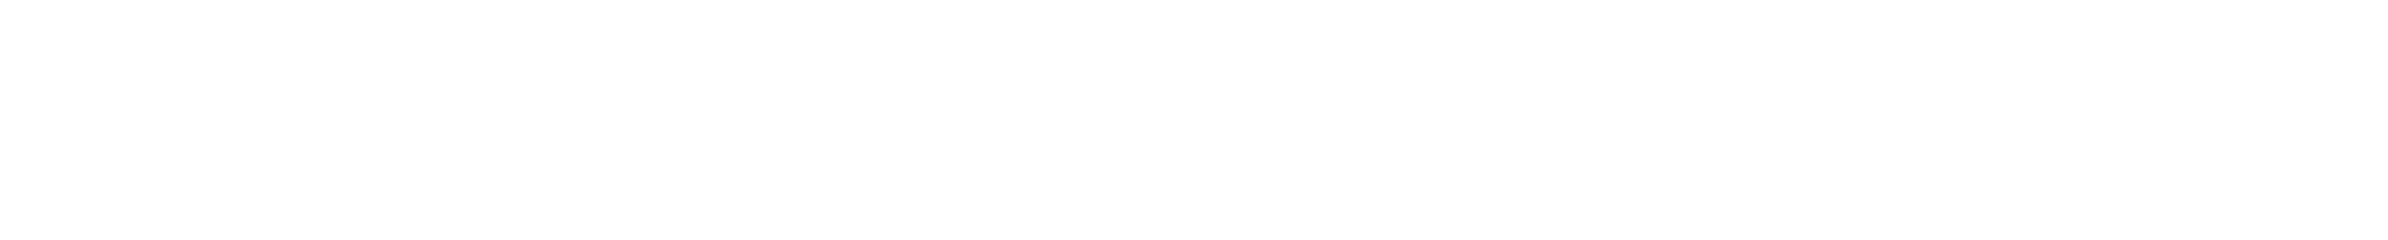 Burton Electrical Solutions